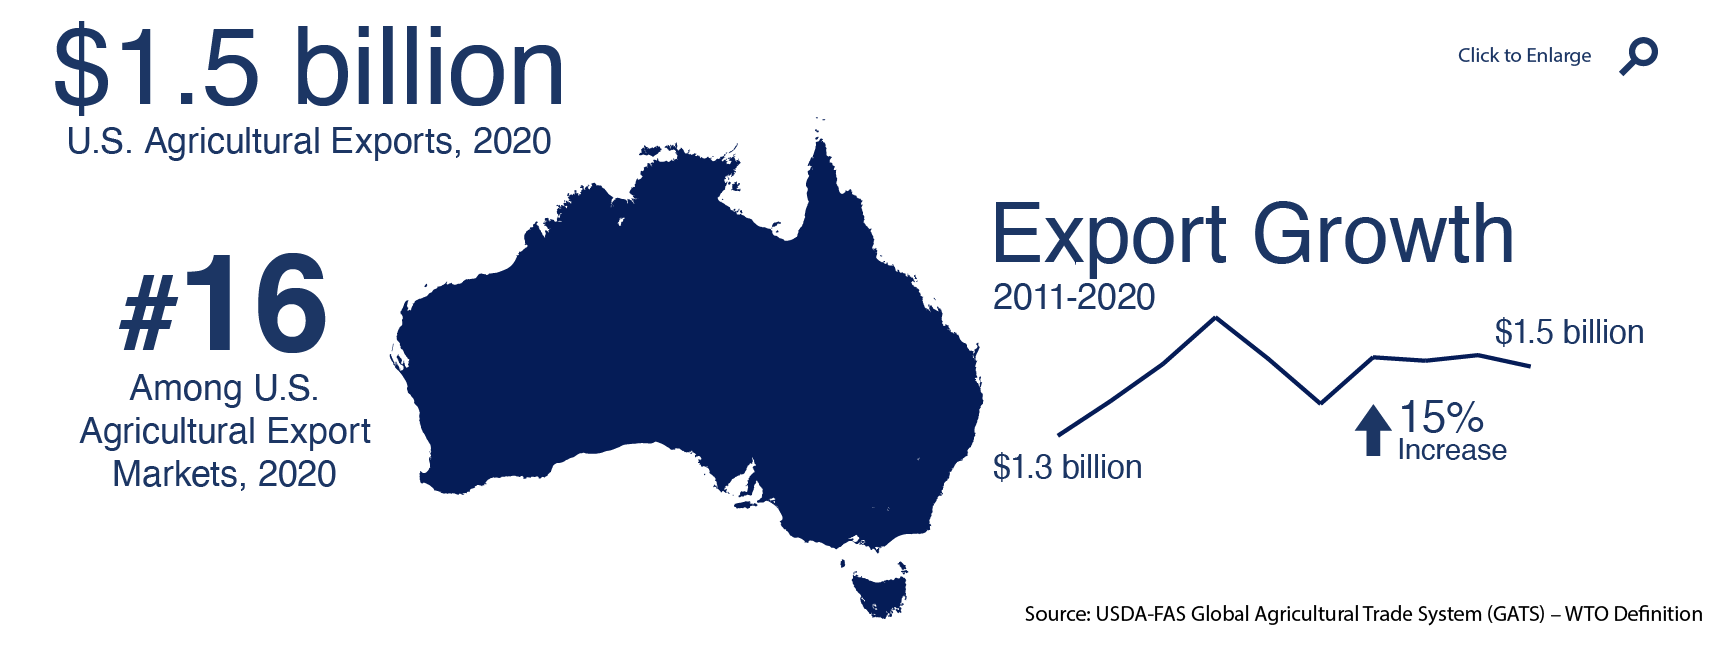 Infographic showing U.S. agricultural trade with Australia in 2019